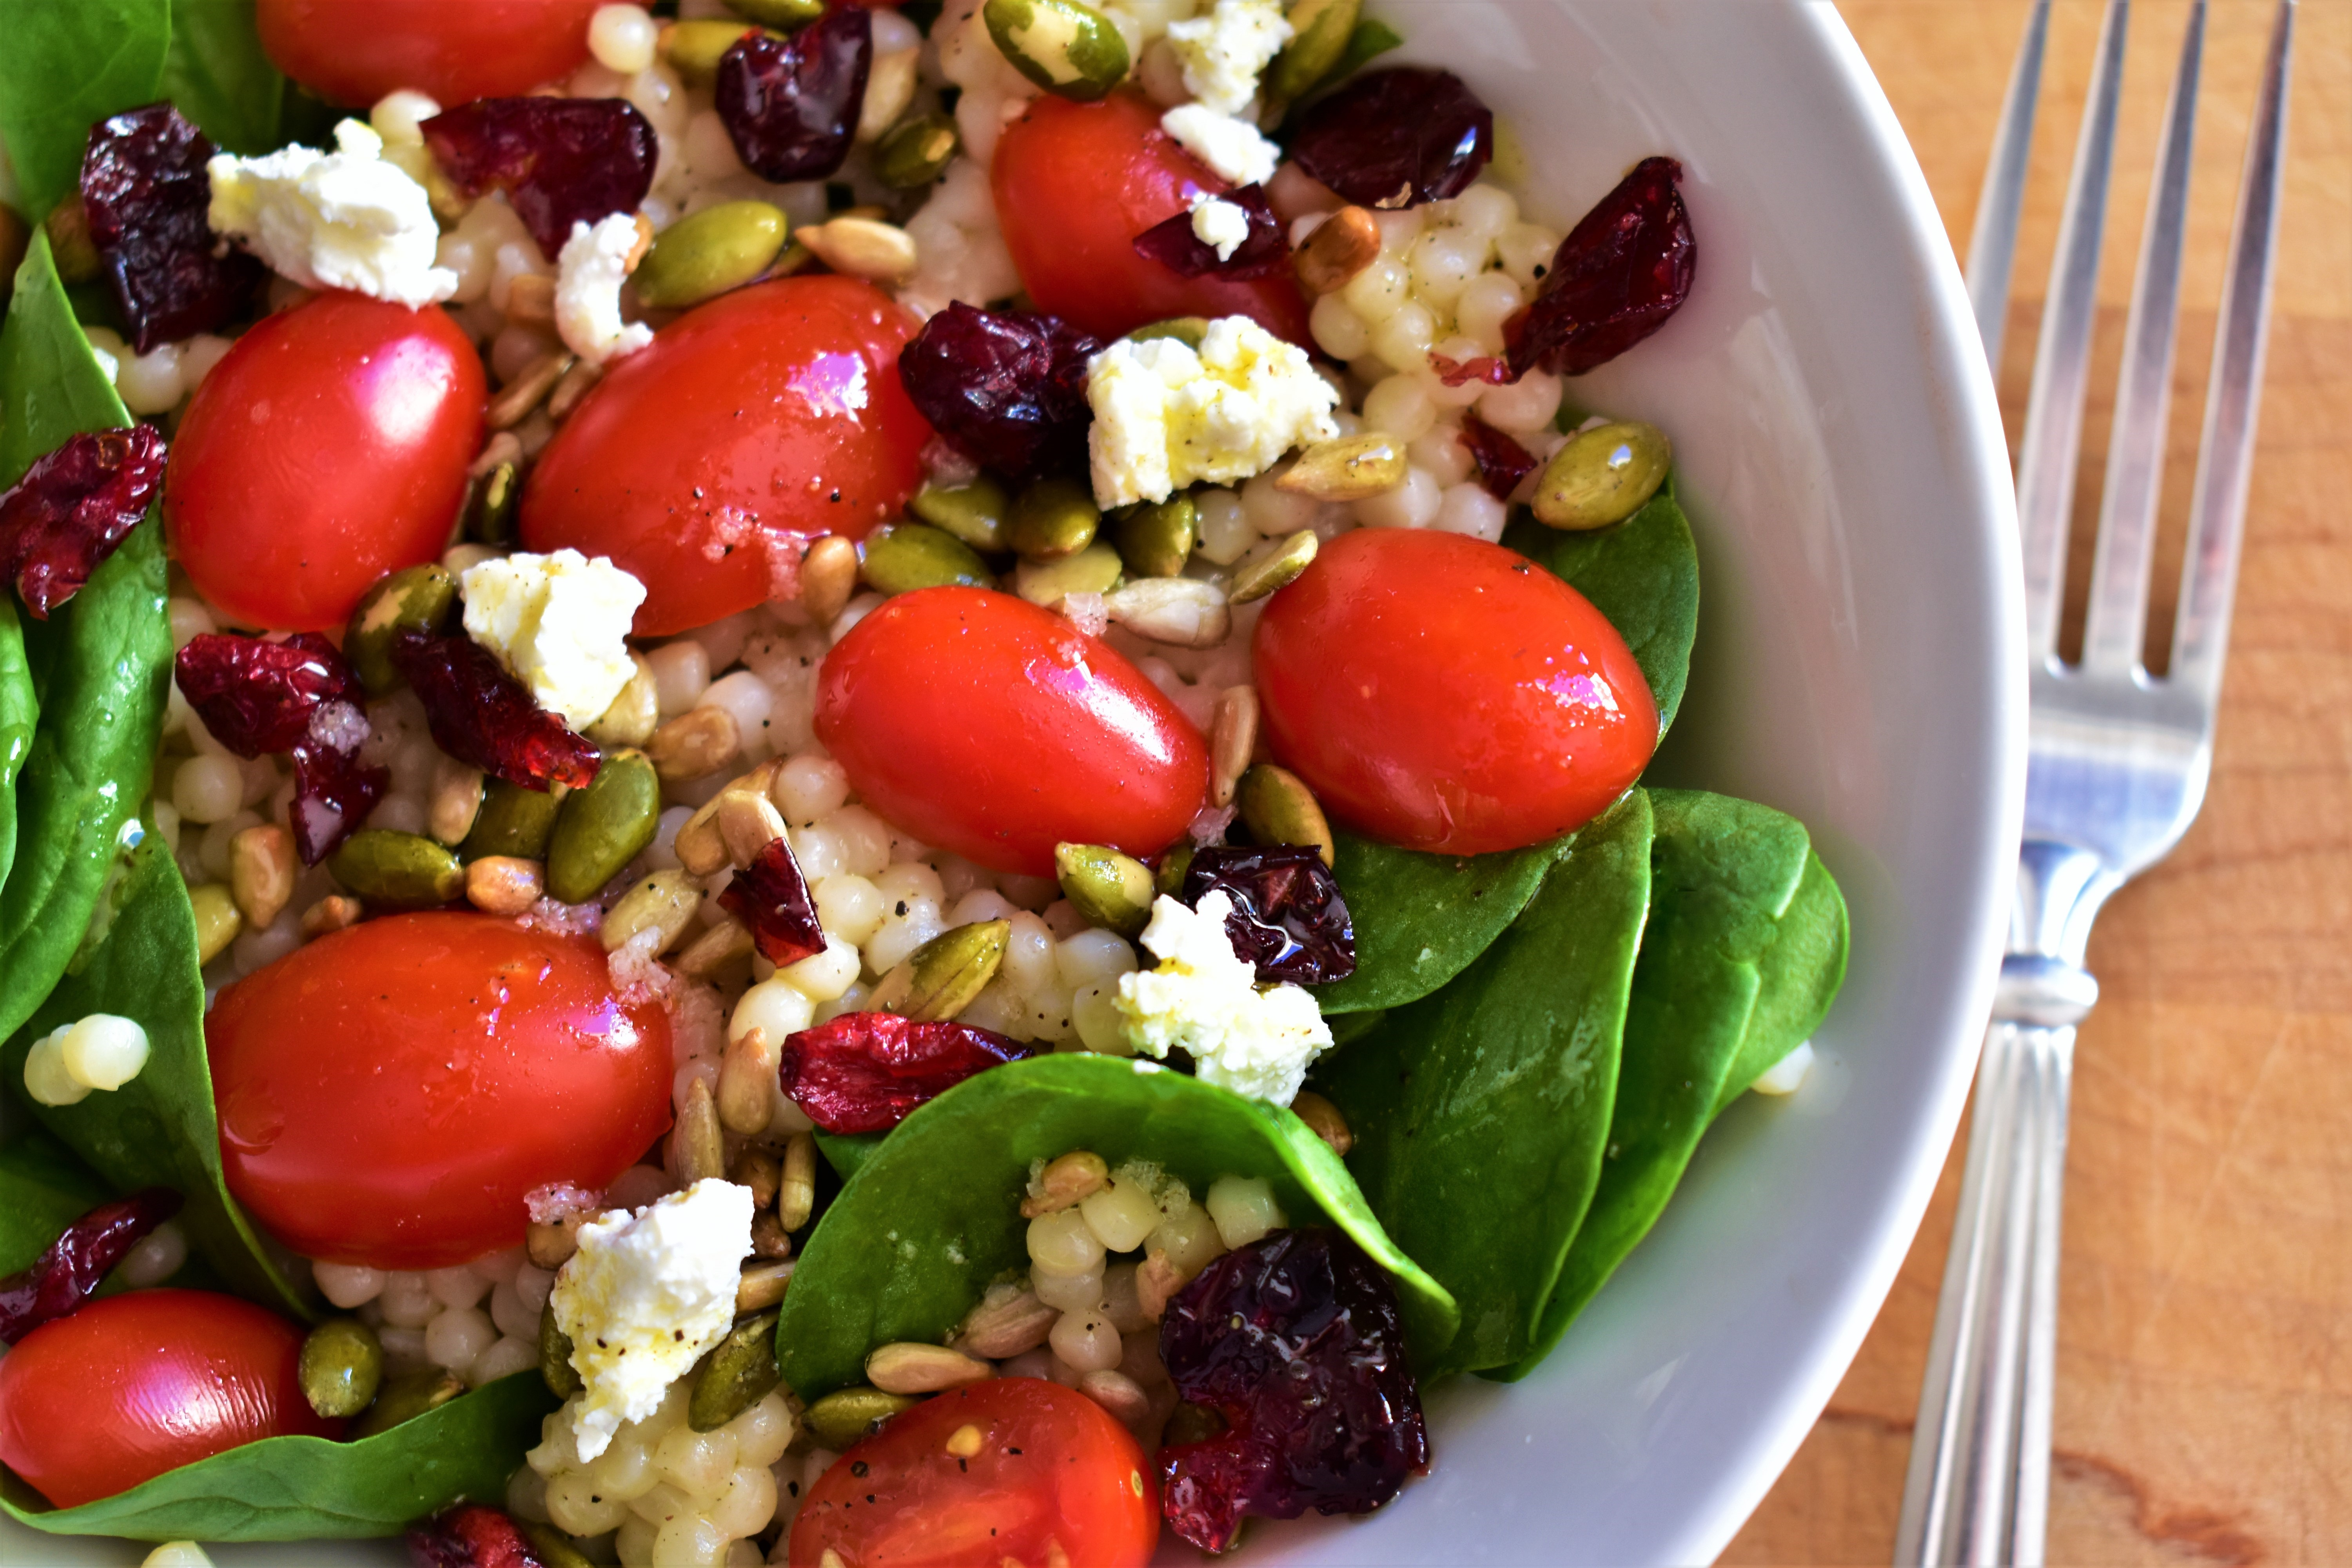 Couscous Salad with Kale, Tomatoes, Cranberries, and Feta